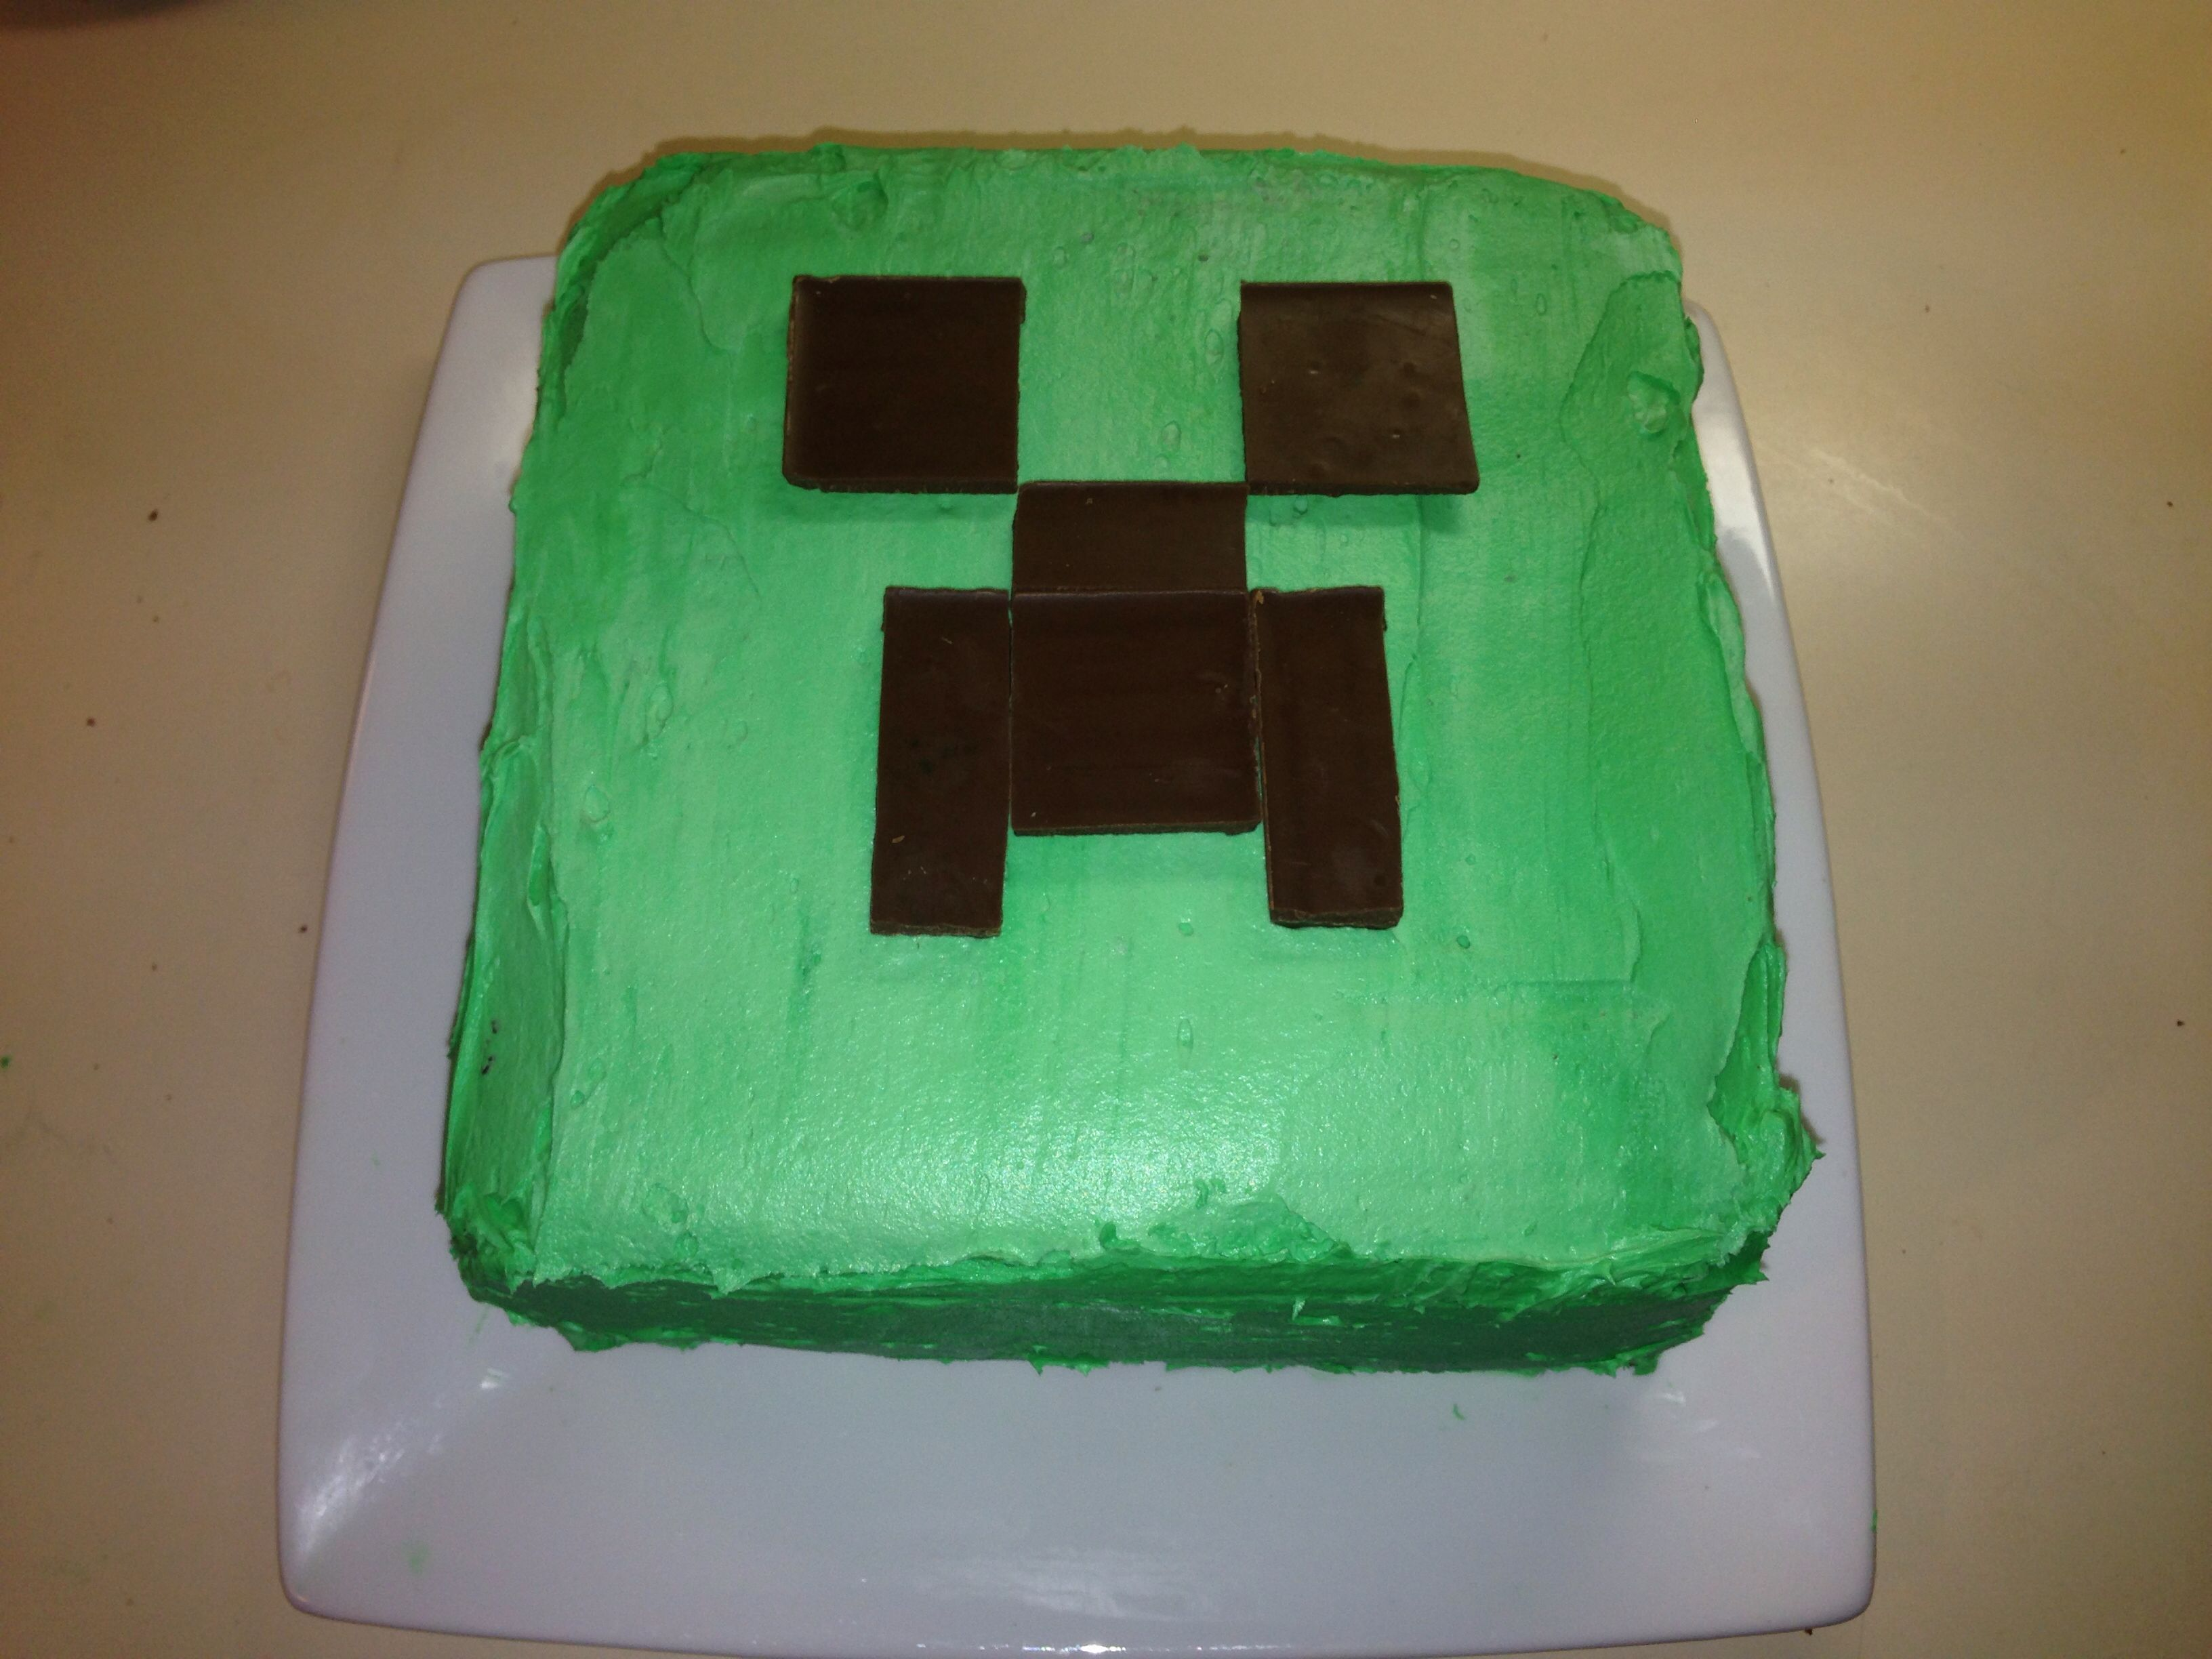 Here S The Minecraft Creeper Cake I Made For My Son S Birthday Hershey S Bars Were Used For The Face A Parsons Cake Creeper Cake Minecraft Cake